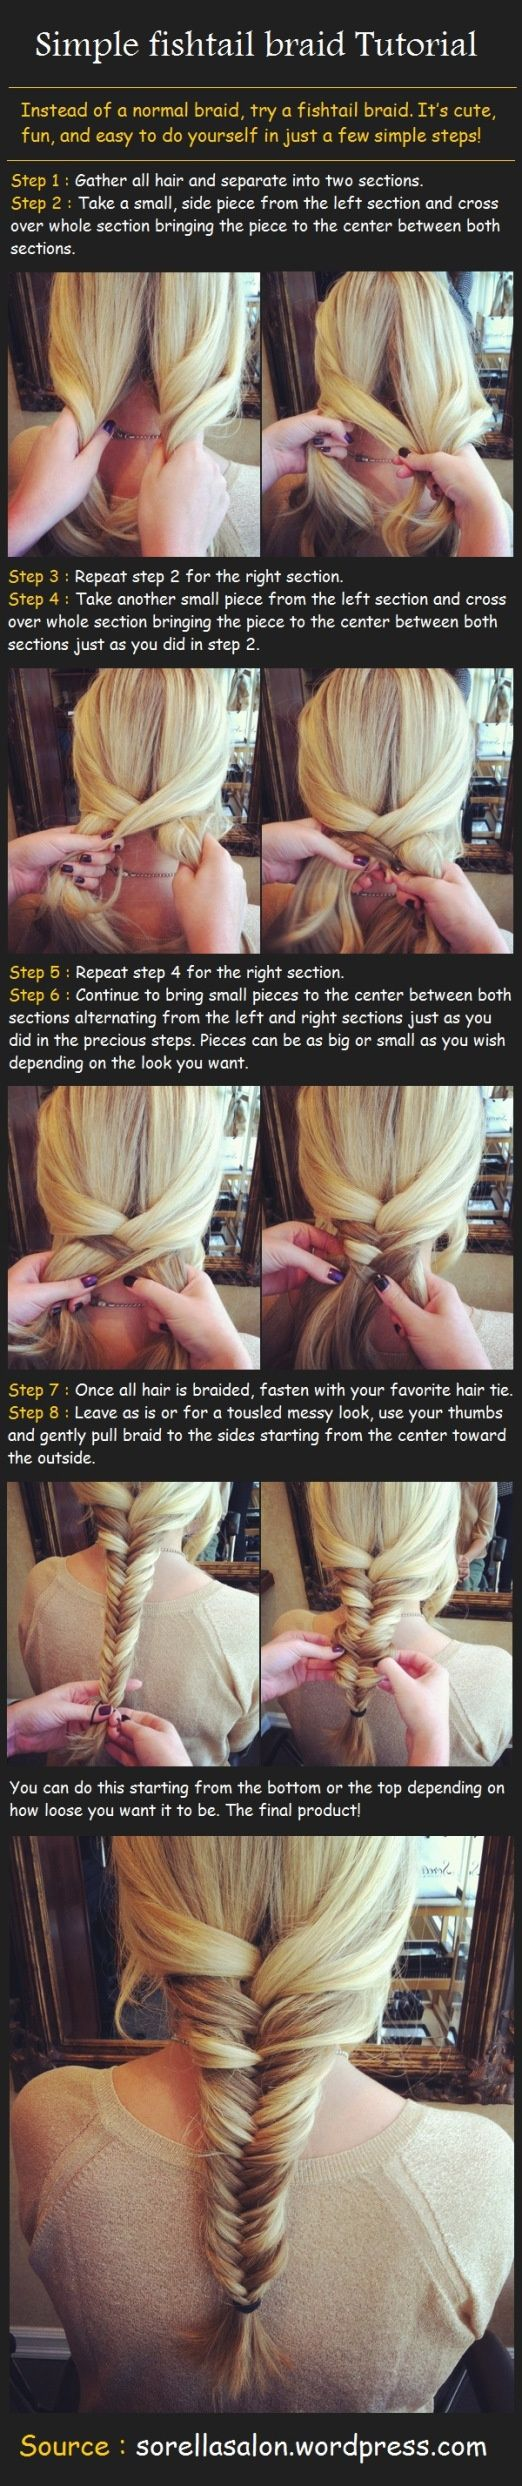 Simple Fishtail Braid Tutorial #Fishtail #Fish #Tail #Braid #Tutorial #Hair #Hairstyle #Beauty